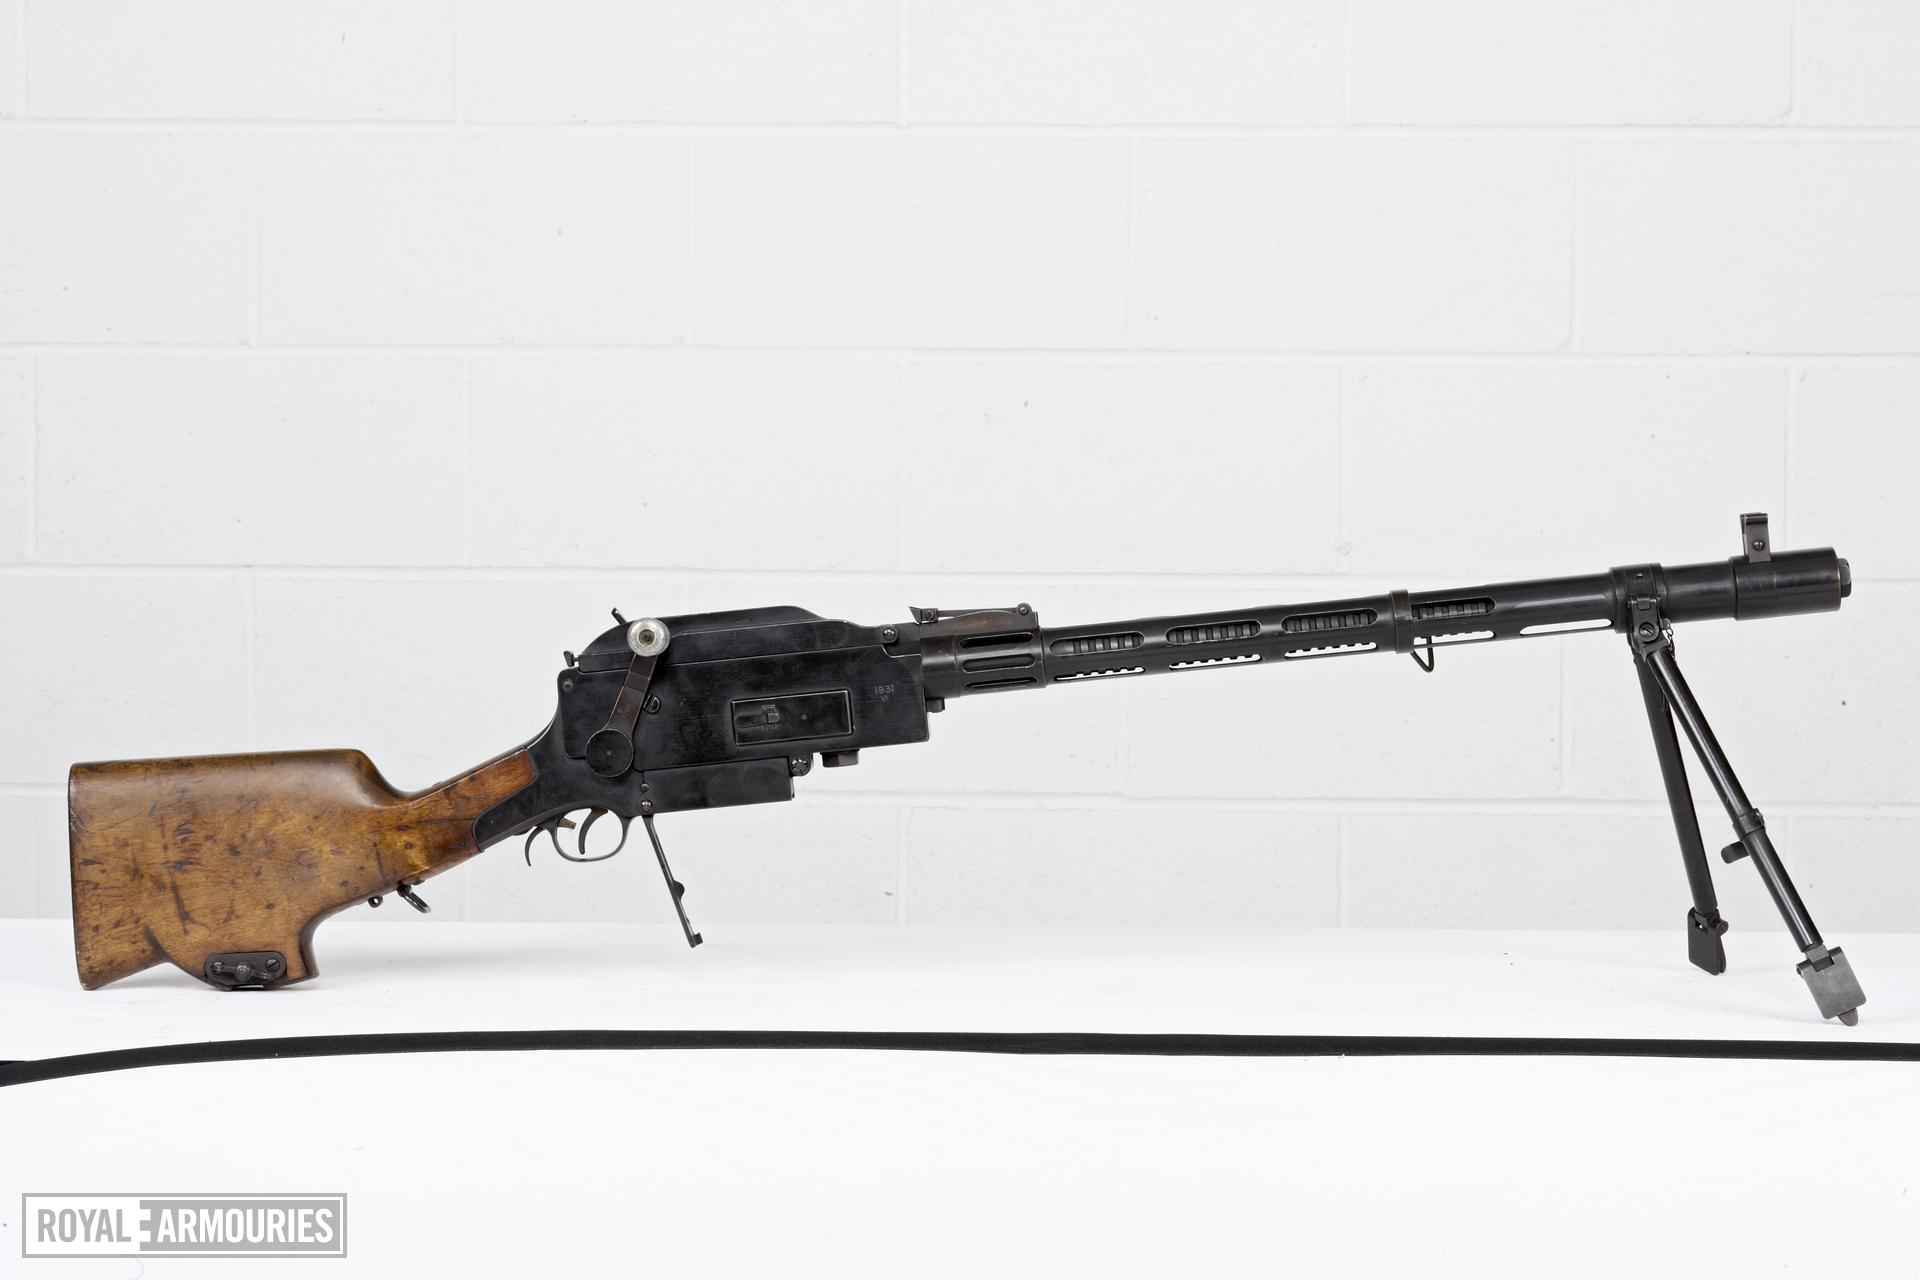 Centrefire automatic light machine gun - Madsen Model 1922